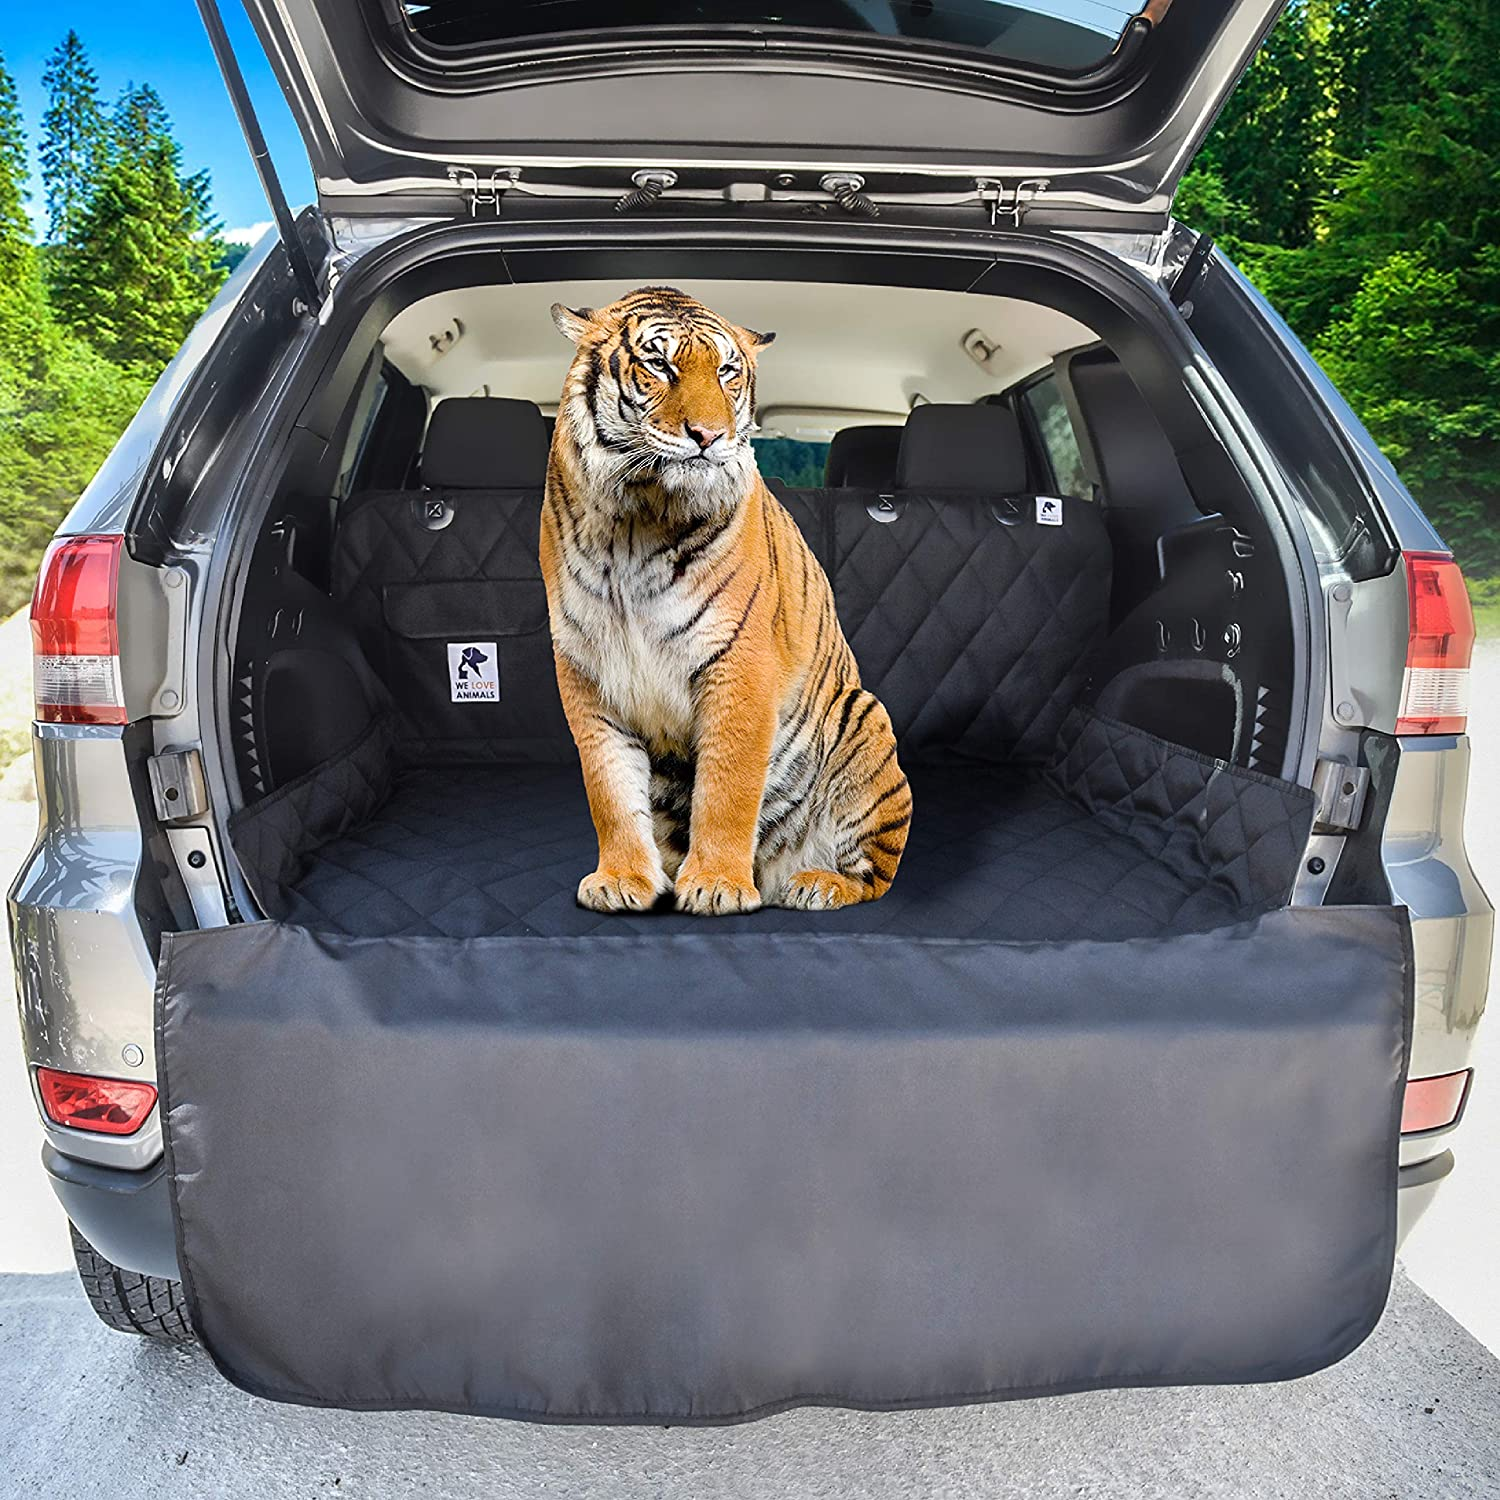 Dog Cargo Liner for SUV, Van, Truck & Jeep - Waterproof, Machine Washable, Nonslip Pet Seat Cover with Bumper Flap will keep your vehicle as clean as ever - XL, Universal Fit - BONUS Carry Bag : Pet Supplies